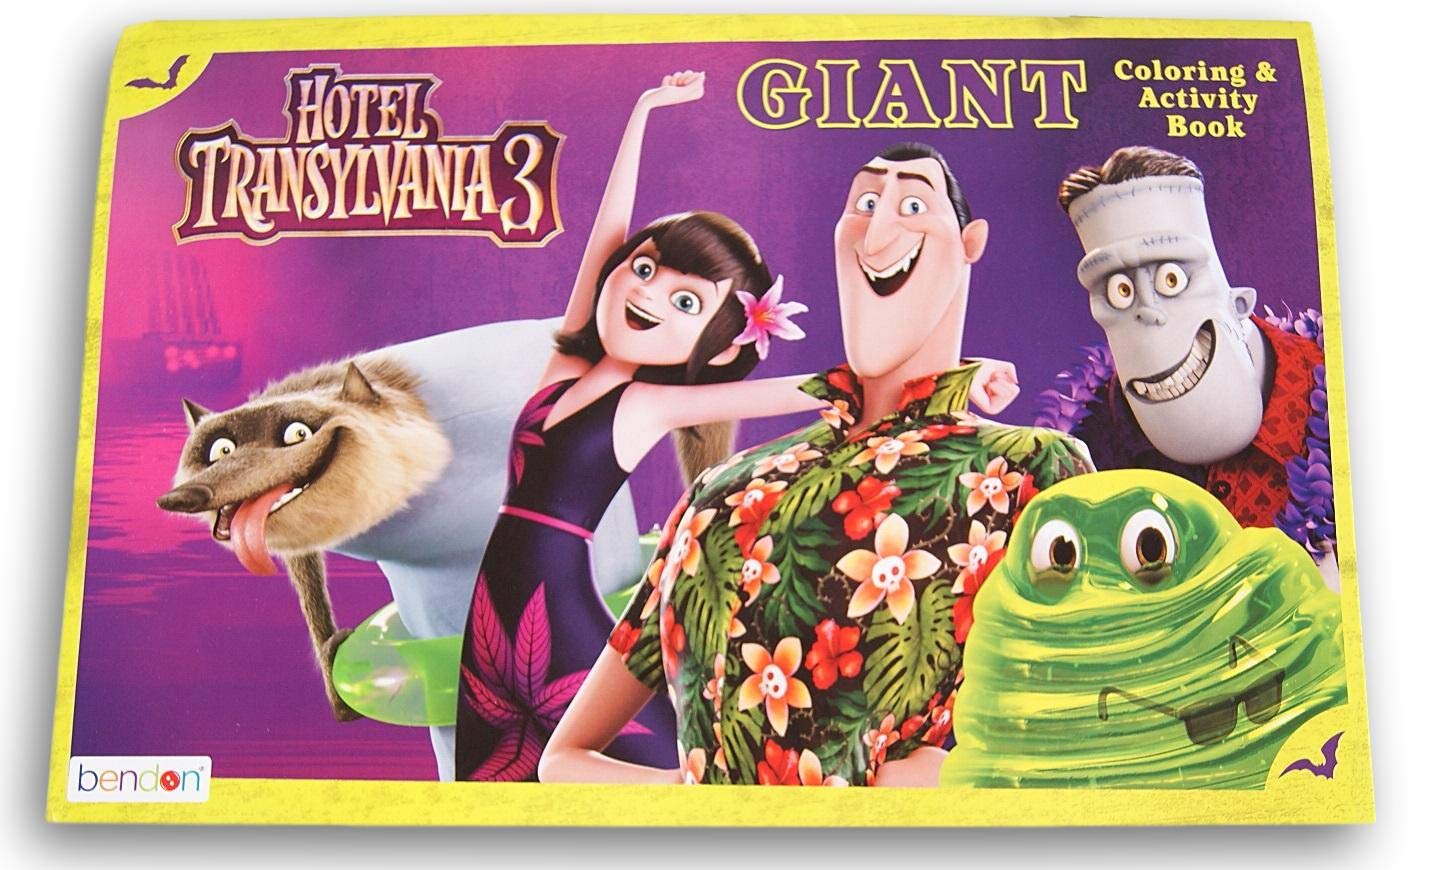 10.5 x 16 Inches Coloring Books Hotel Transylvania 3 Giant Coloring and Activity Book